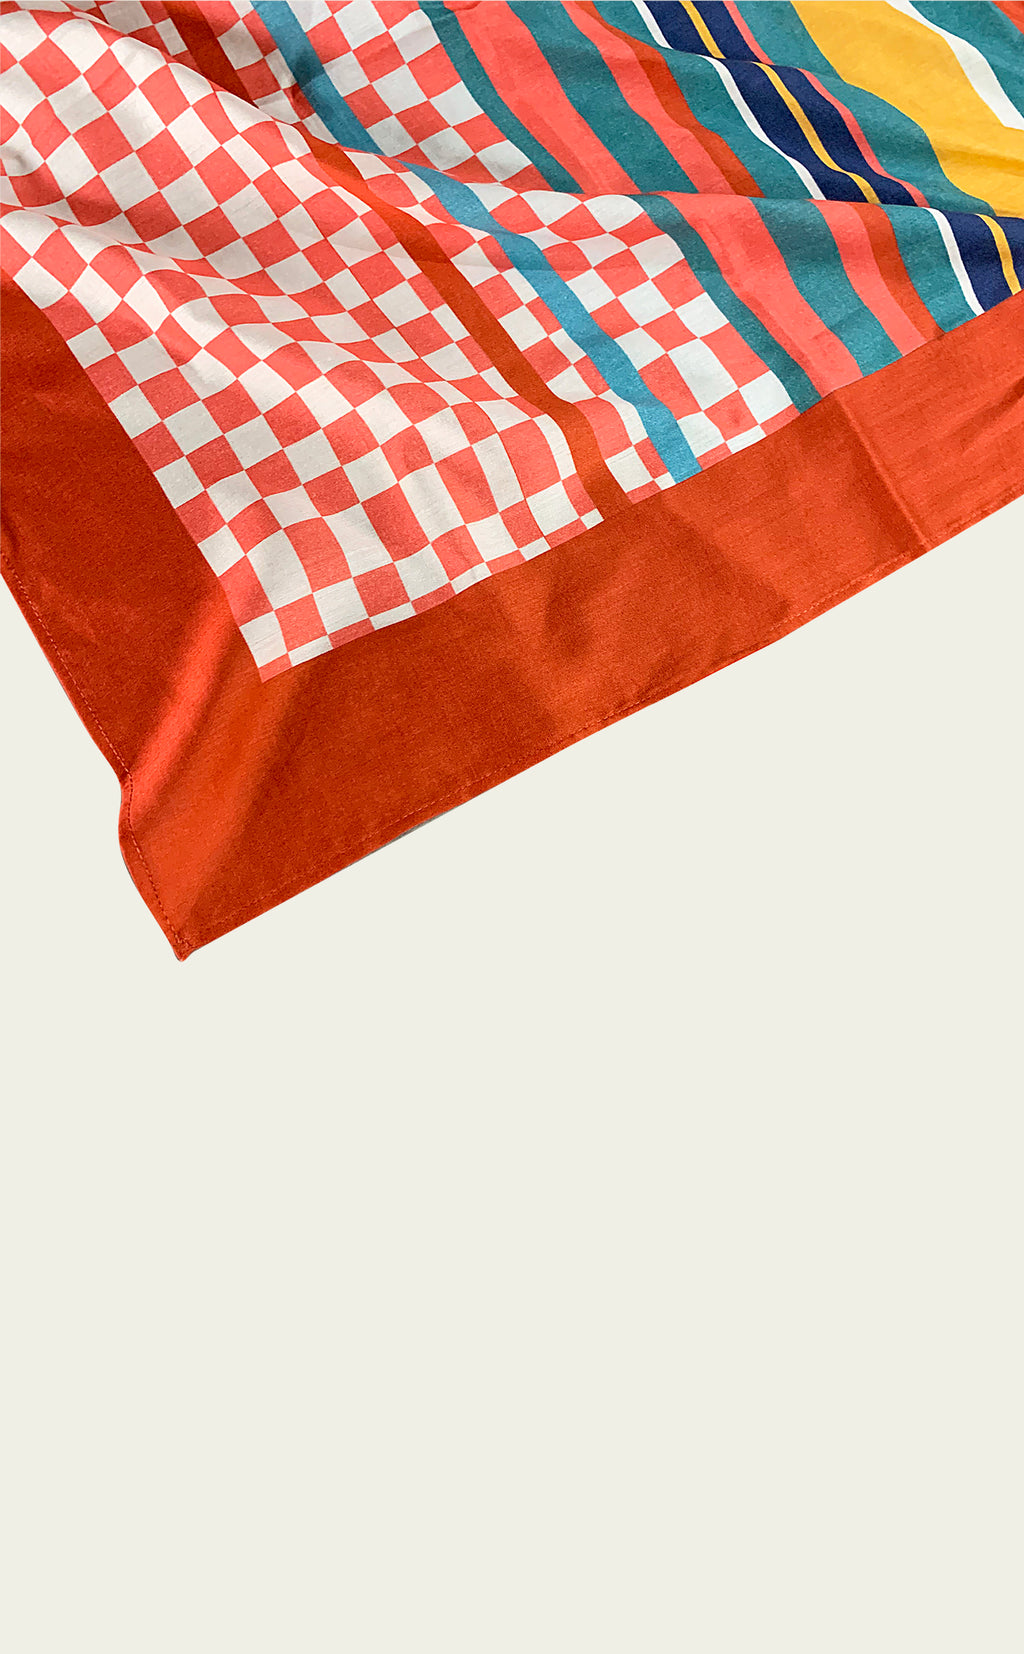 Coral Patterned Bandana